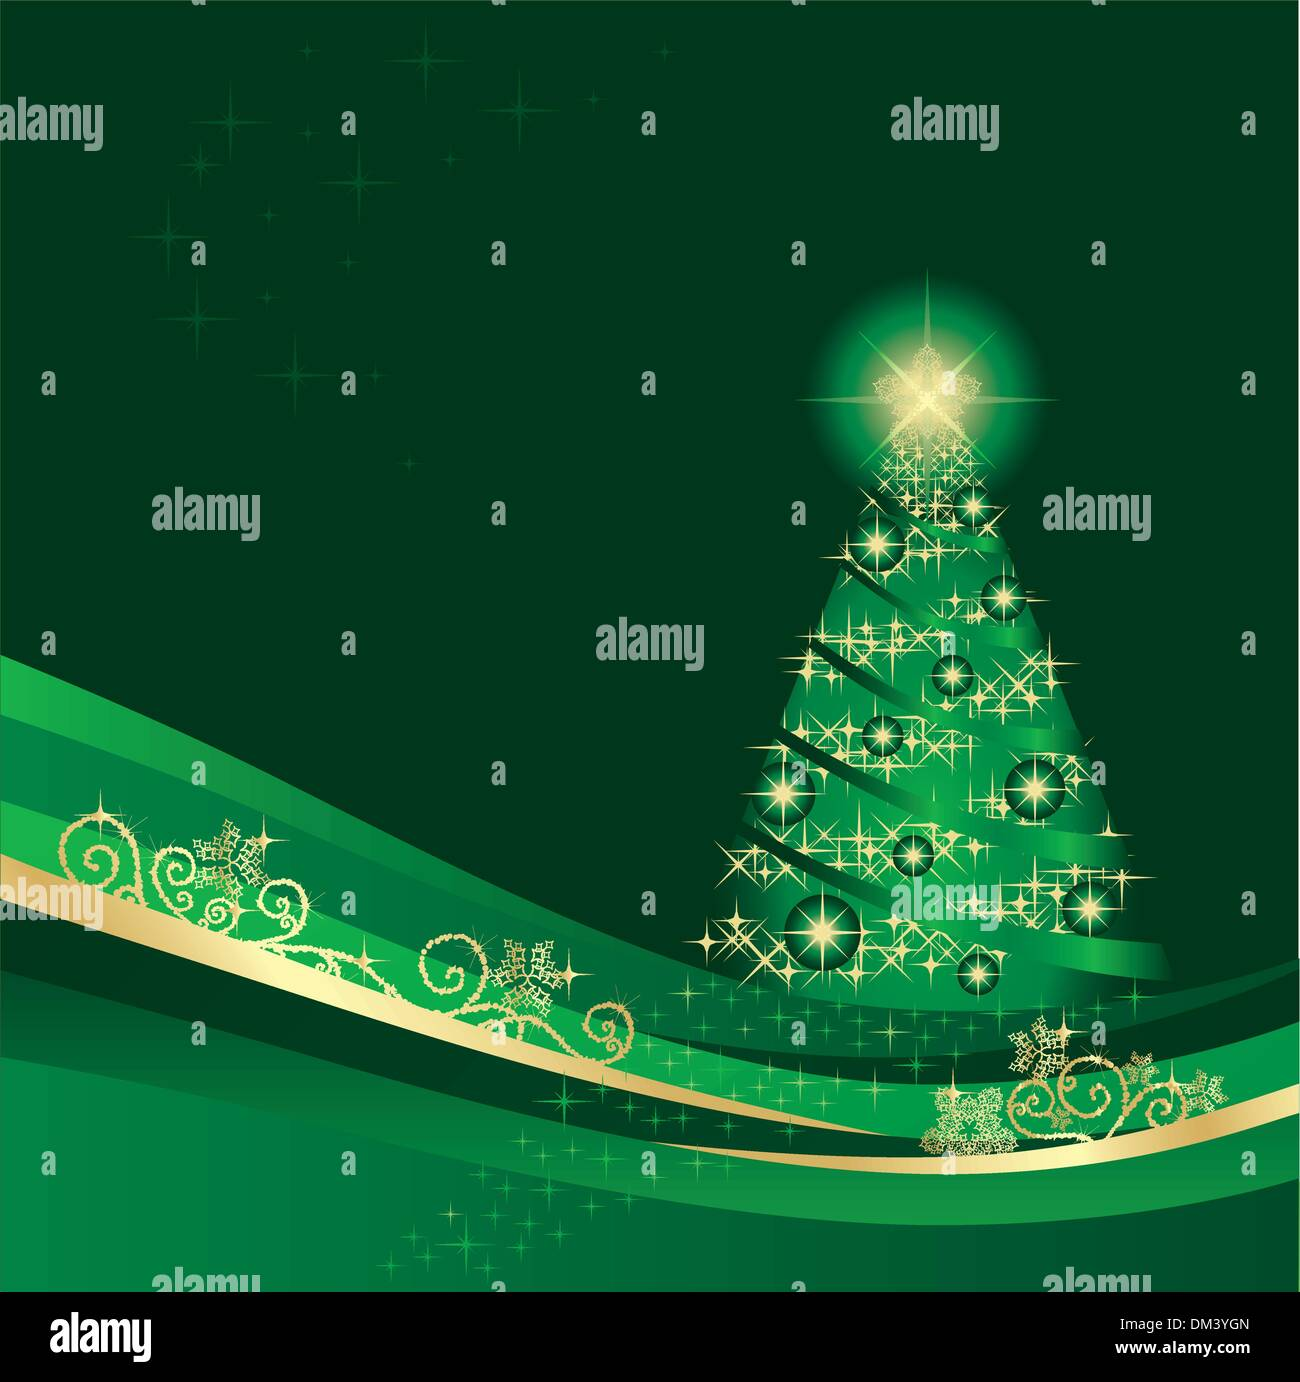 Glowing Christmas tree in a green winter garden Stock Vector